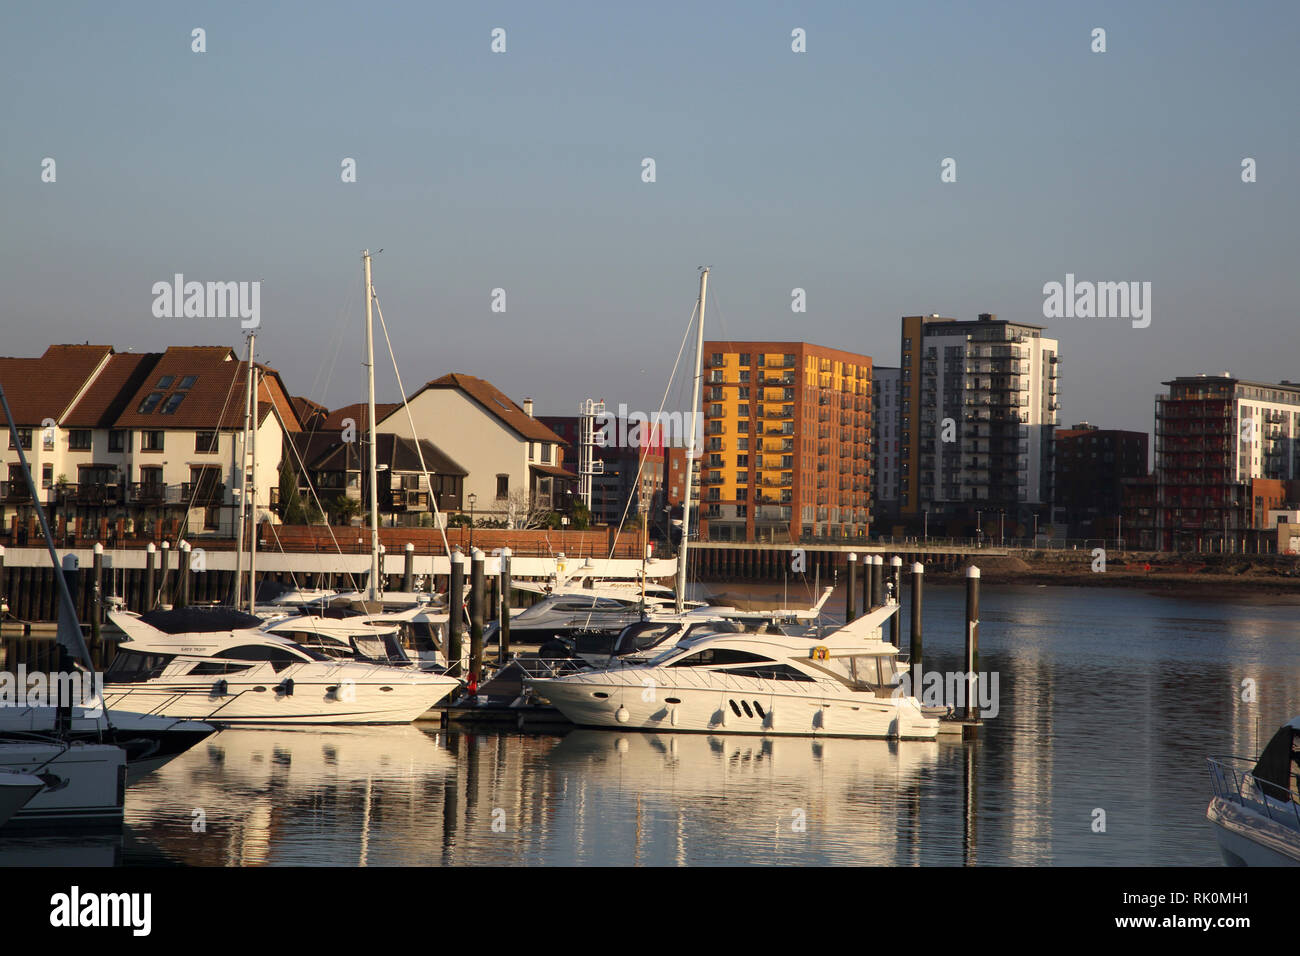 Ocean Village Southampton England Waterside Apartments And Yachts - Stock Image